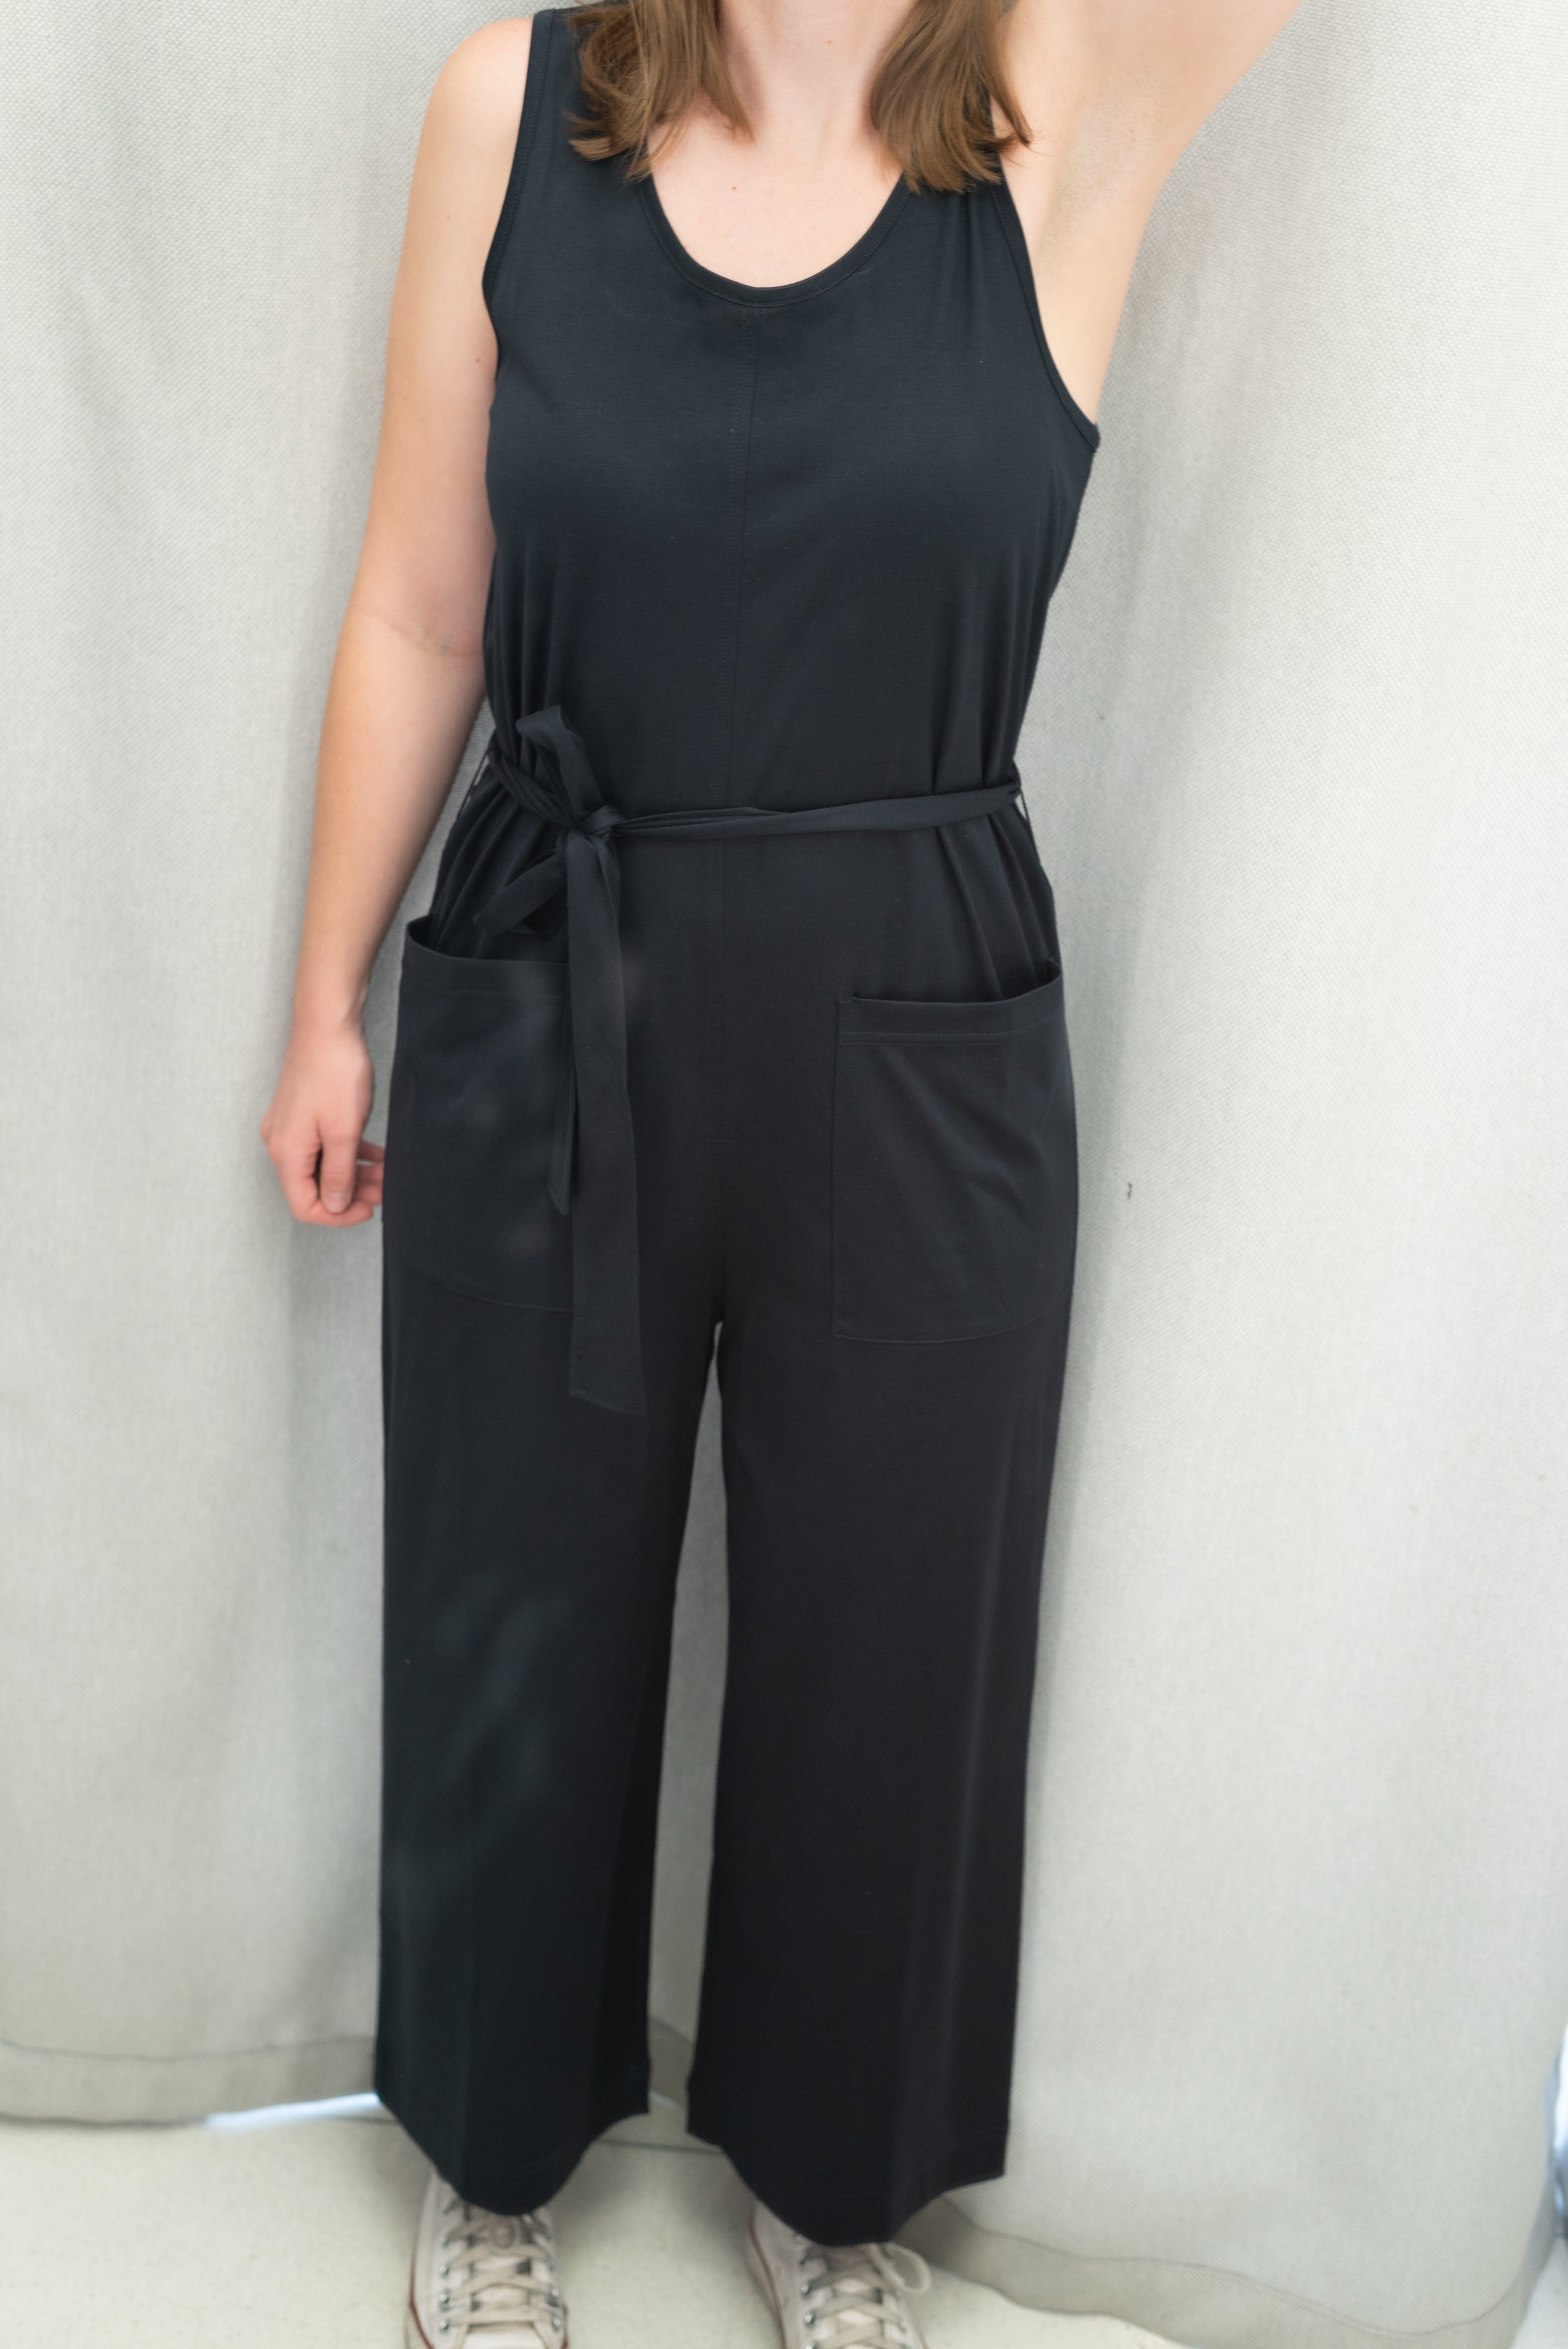 Everlane The Luxe Cotton Jumpsuit - Size S